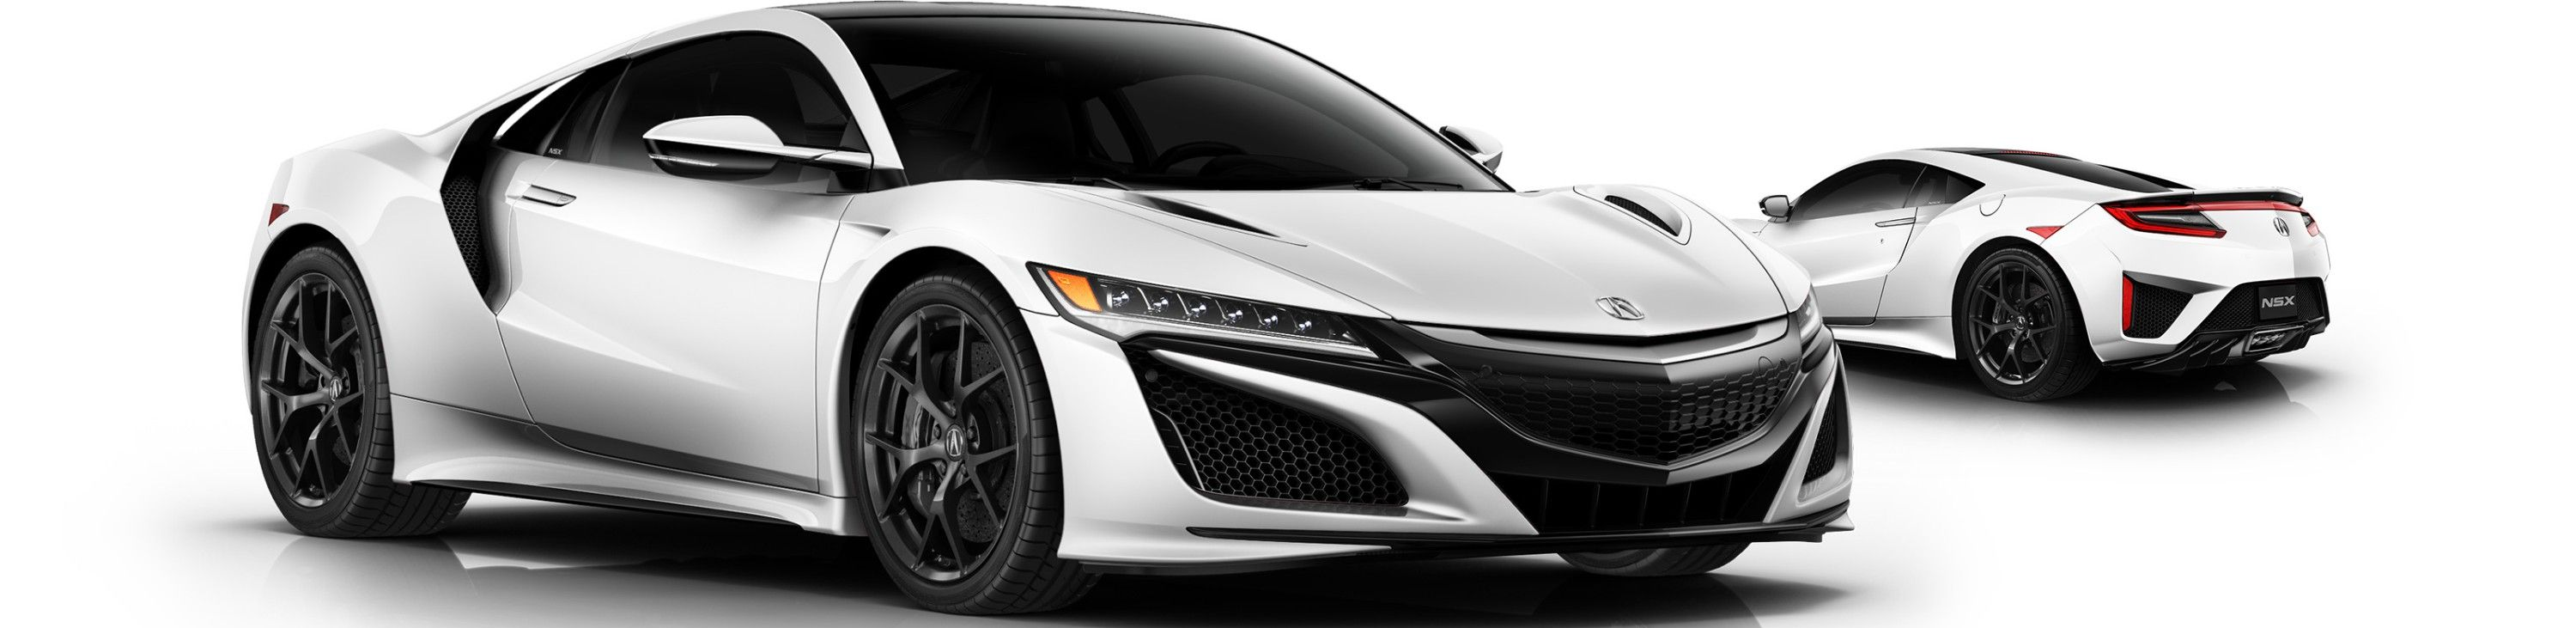 2017 acura nsx for sale in chantilly va pohanka automotive group. Black Bedroom Furniture Sets. Home Design Ideas